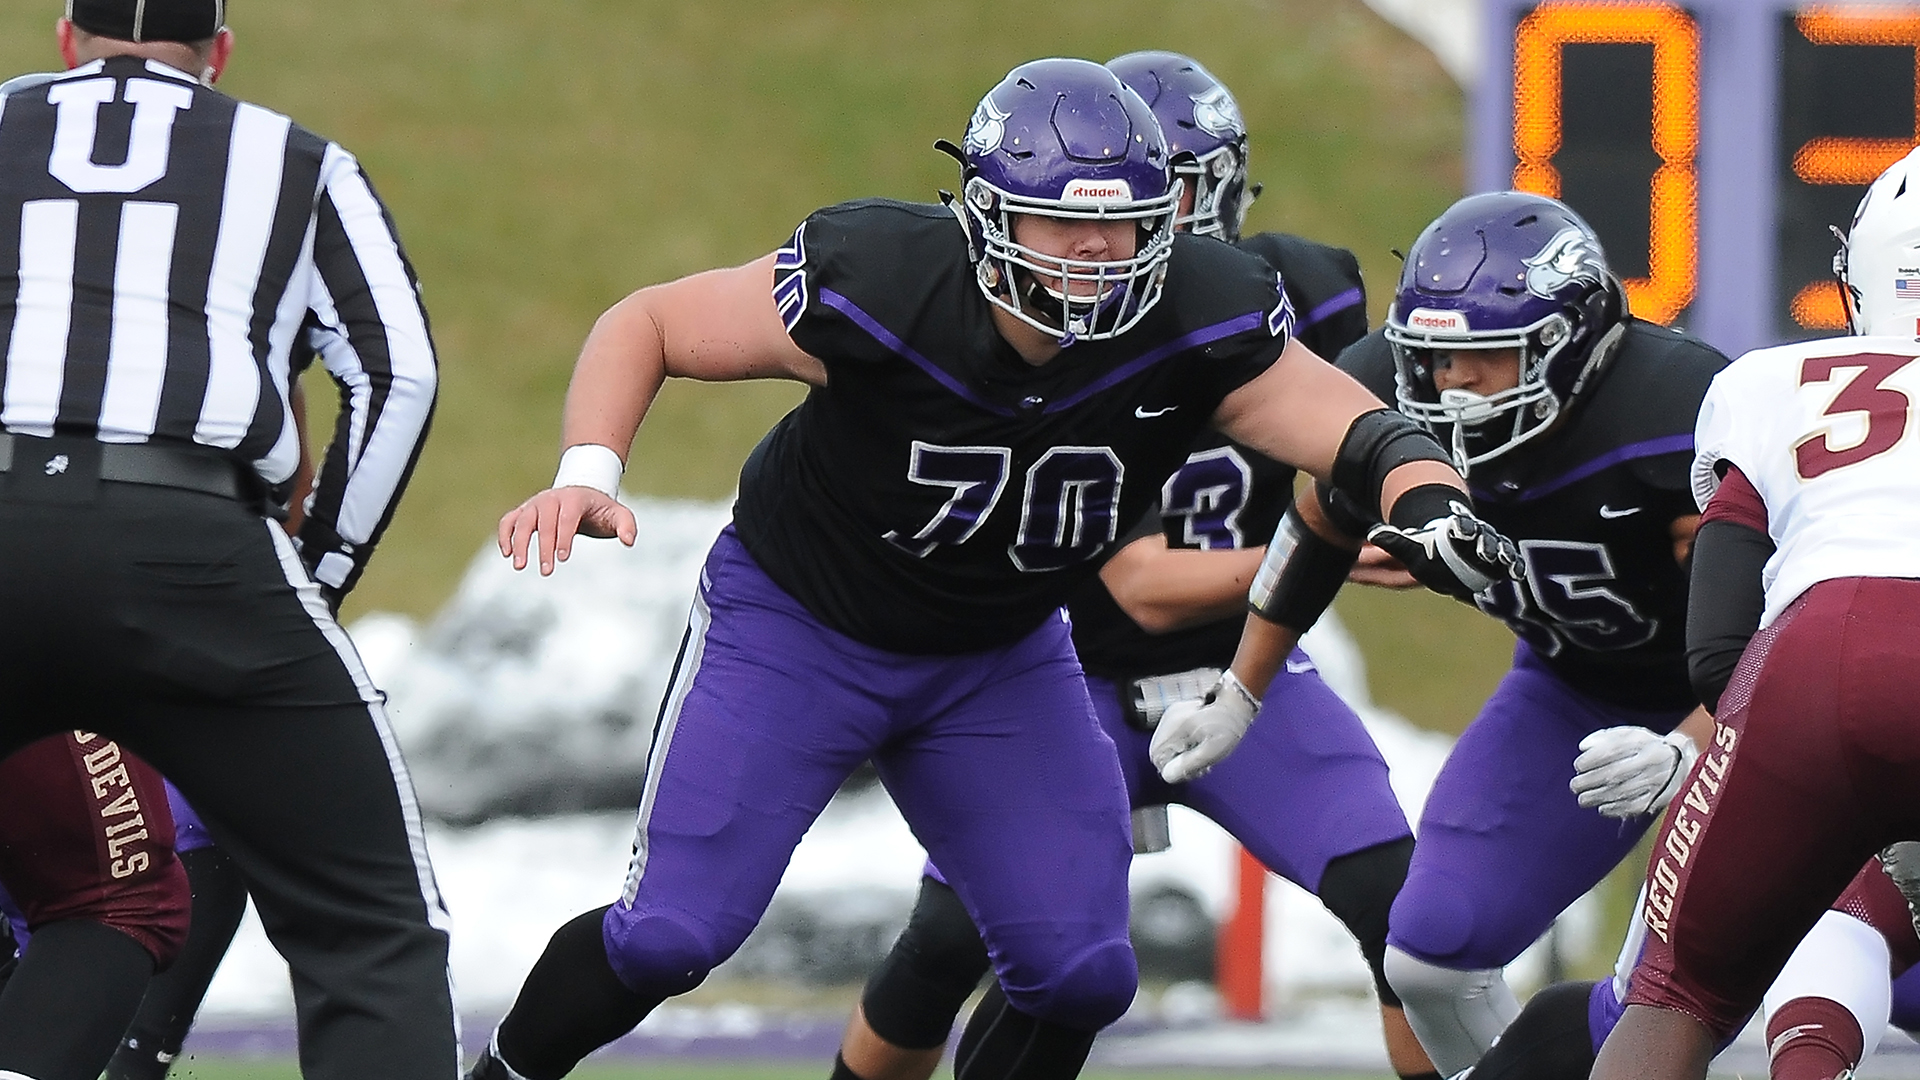 UW-Whitewater's Trewyn Signs Free Agent Contract With Tampa